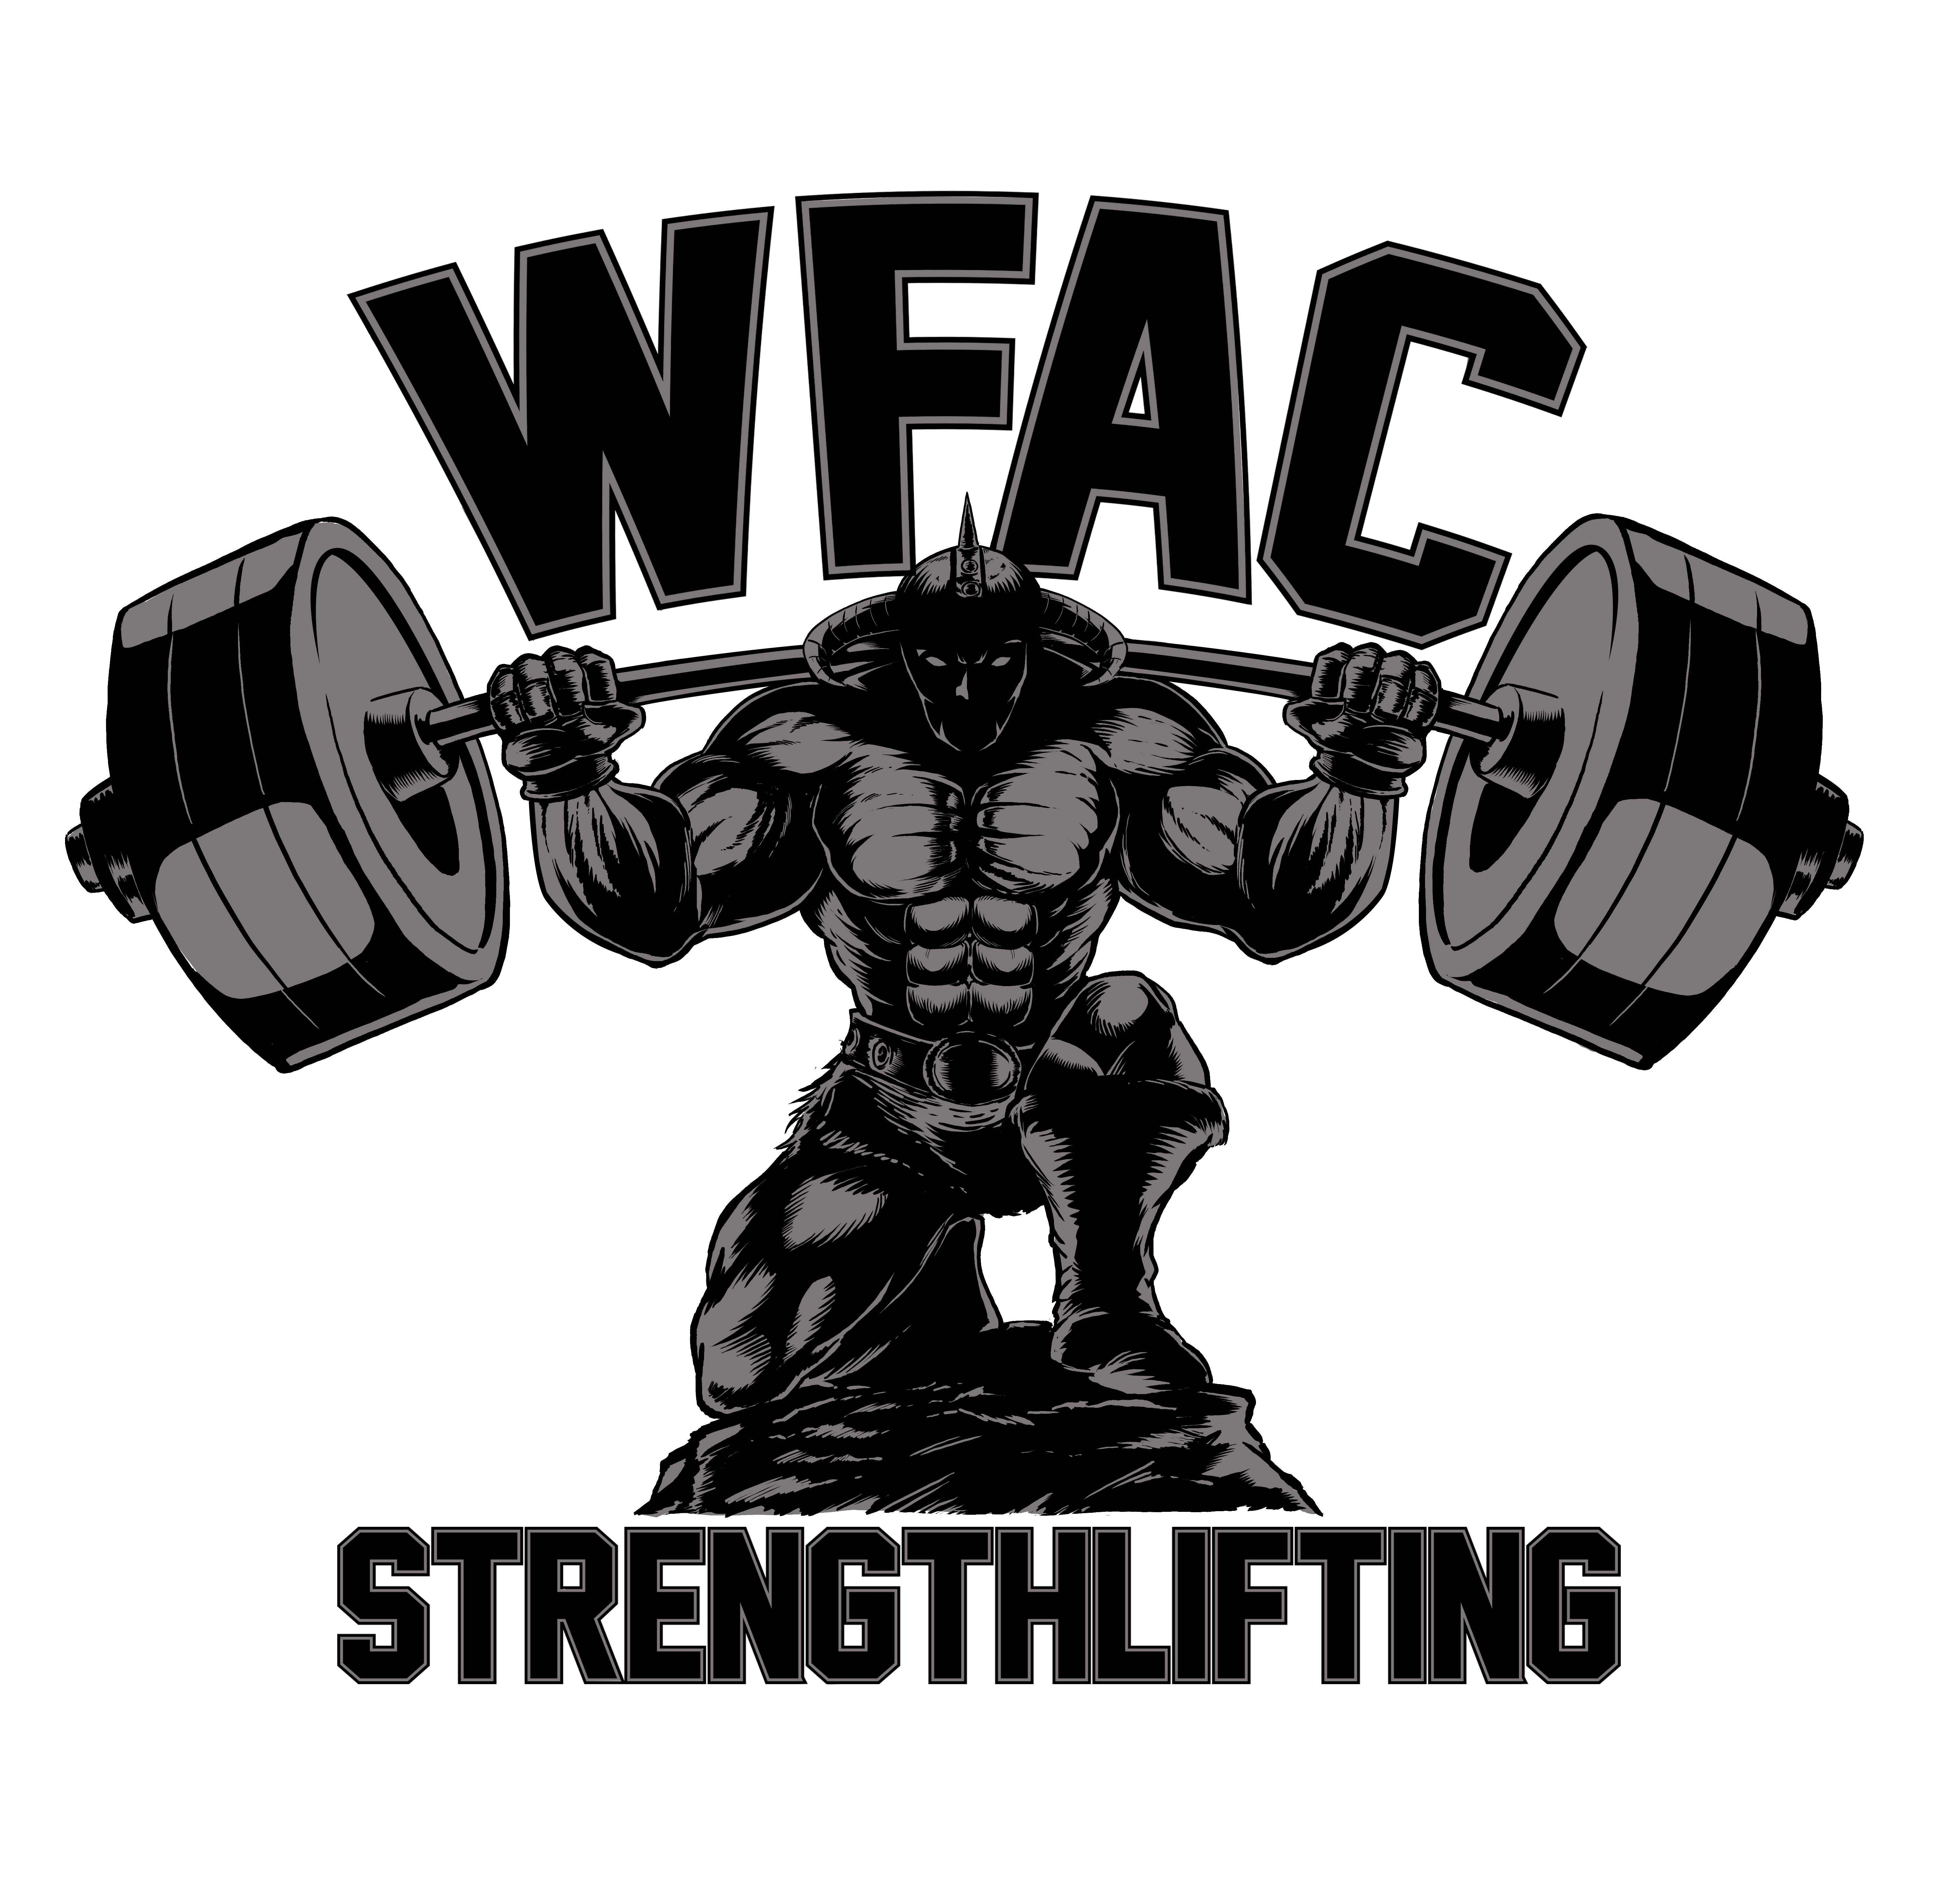 80s, Norse, Frazetta inspired design for weight lifting meet